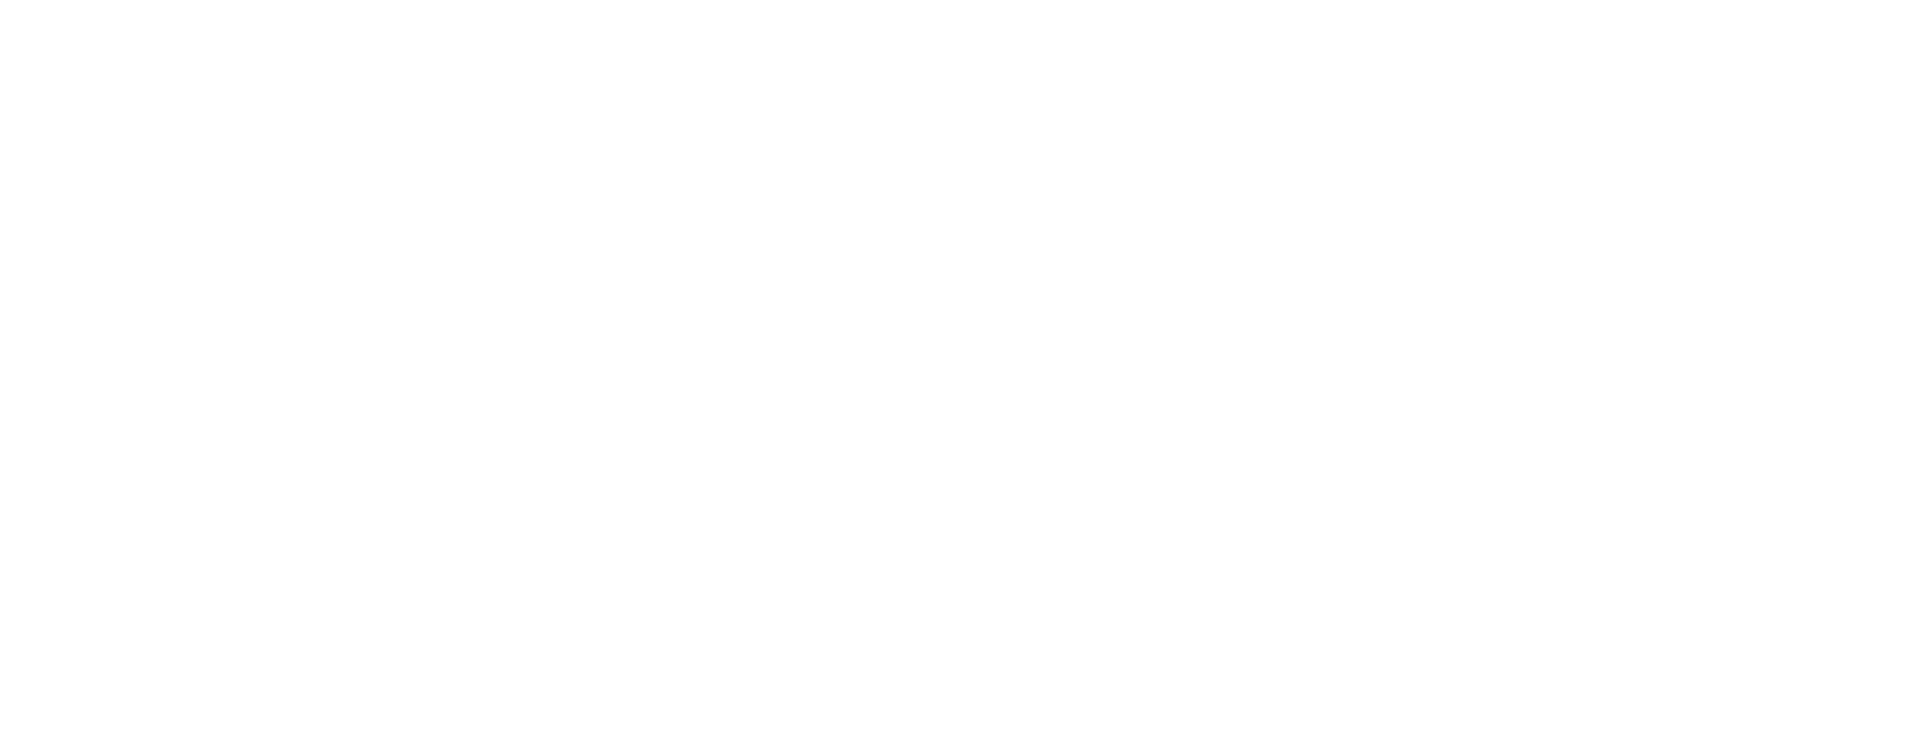 Courtyard Private School